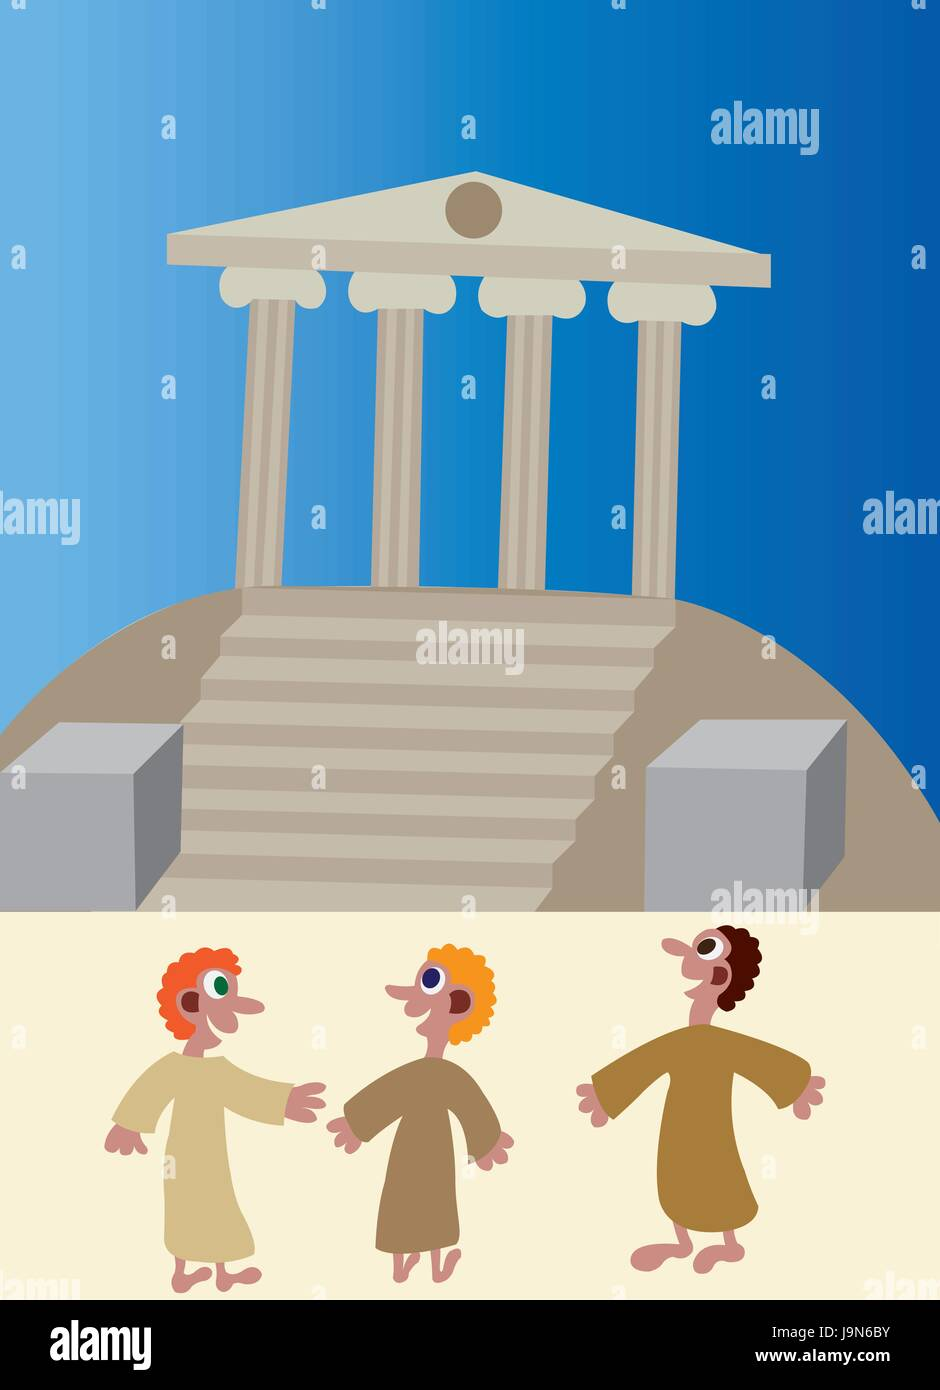 believers paying visit to a sacred ancient temple, - Stock Vector